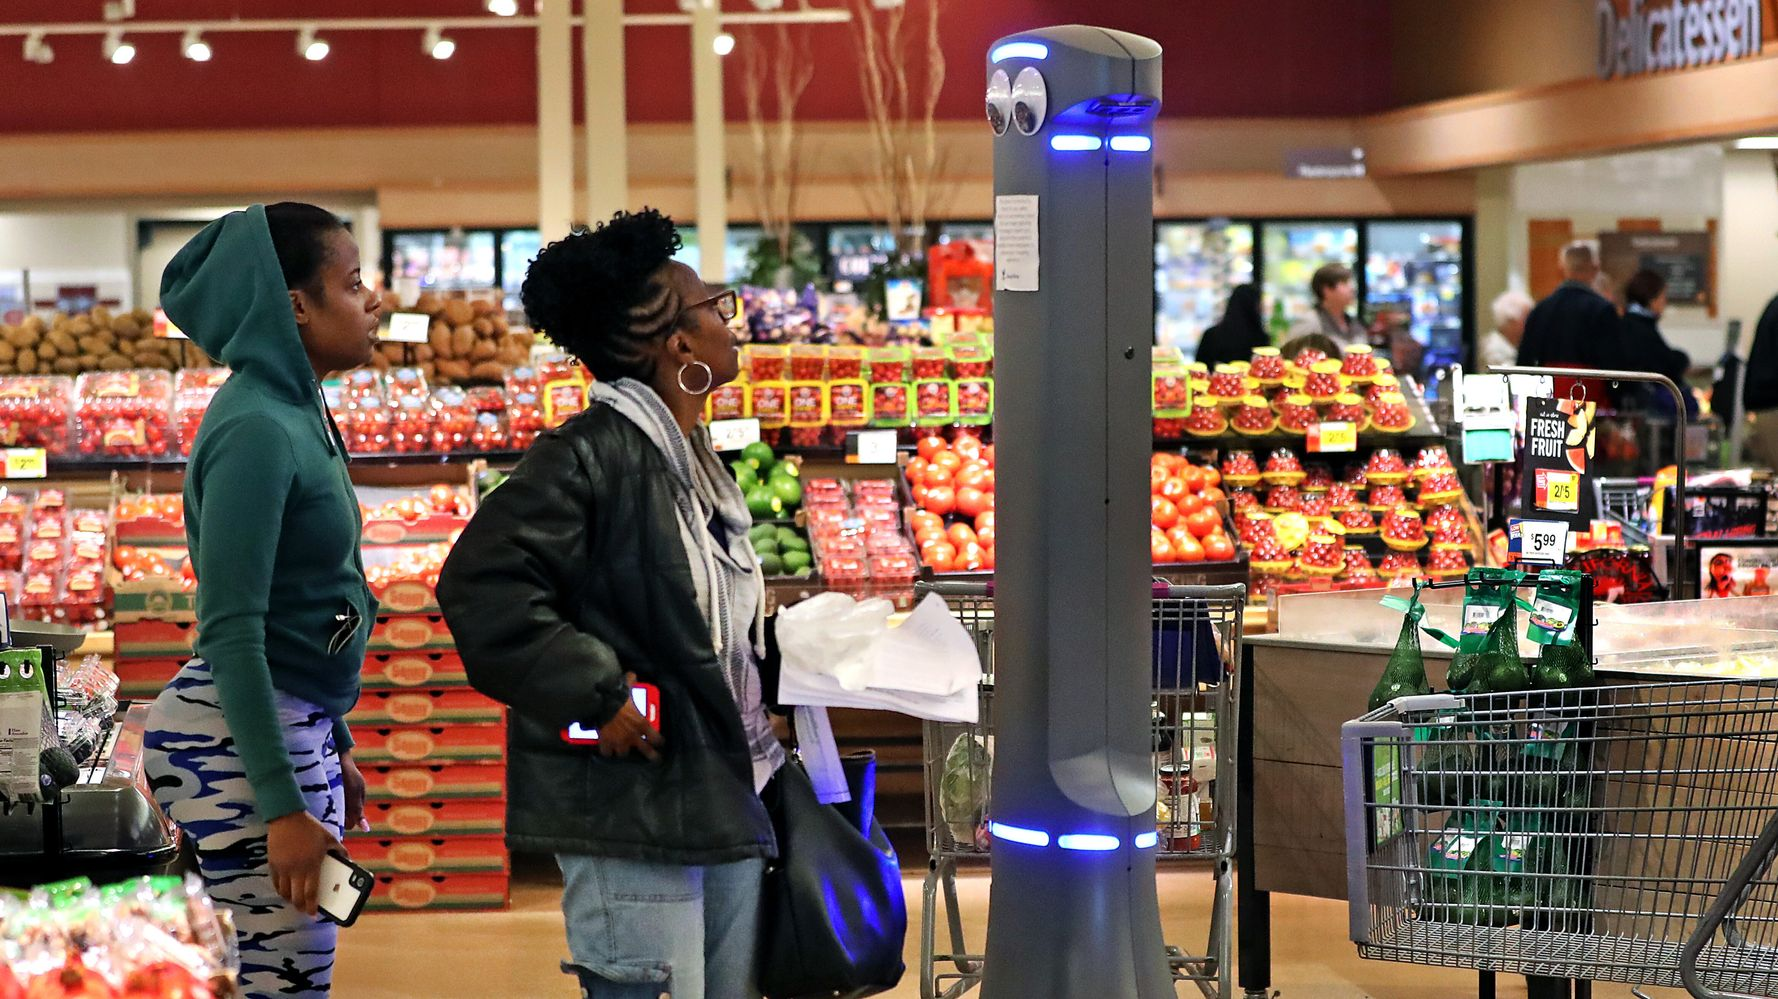 17 Tweets About Marty, The Shady Stop & Shop Robot